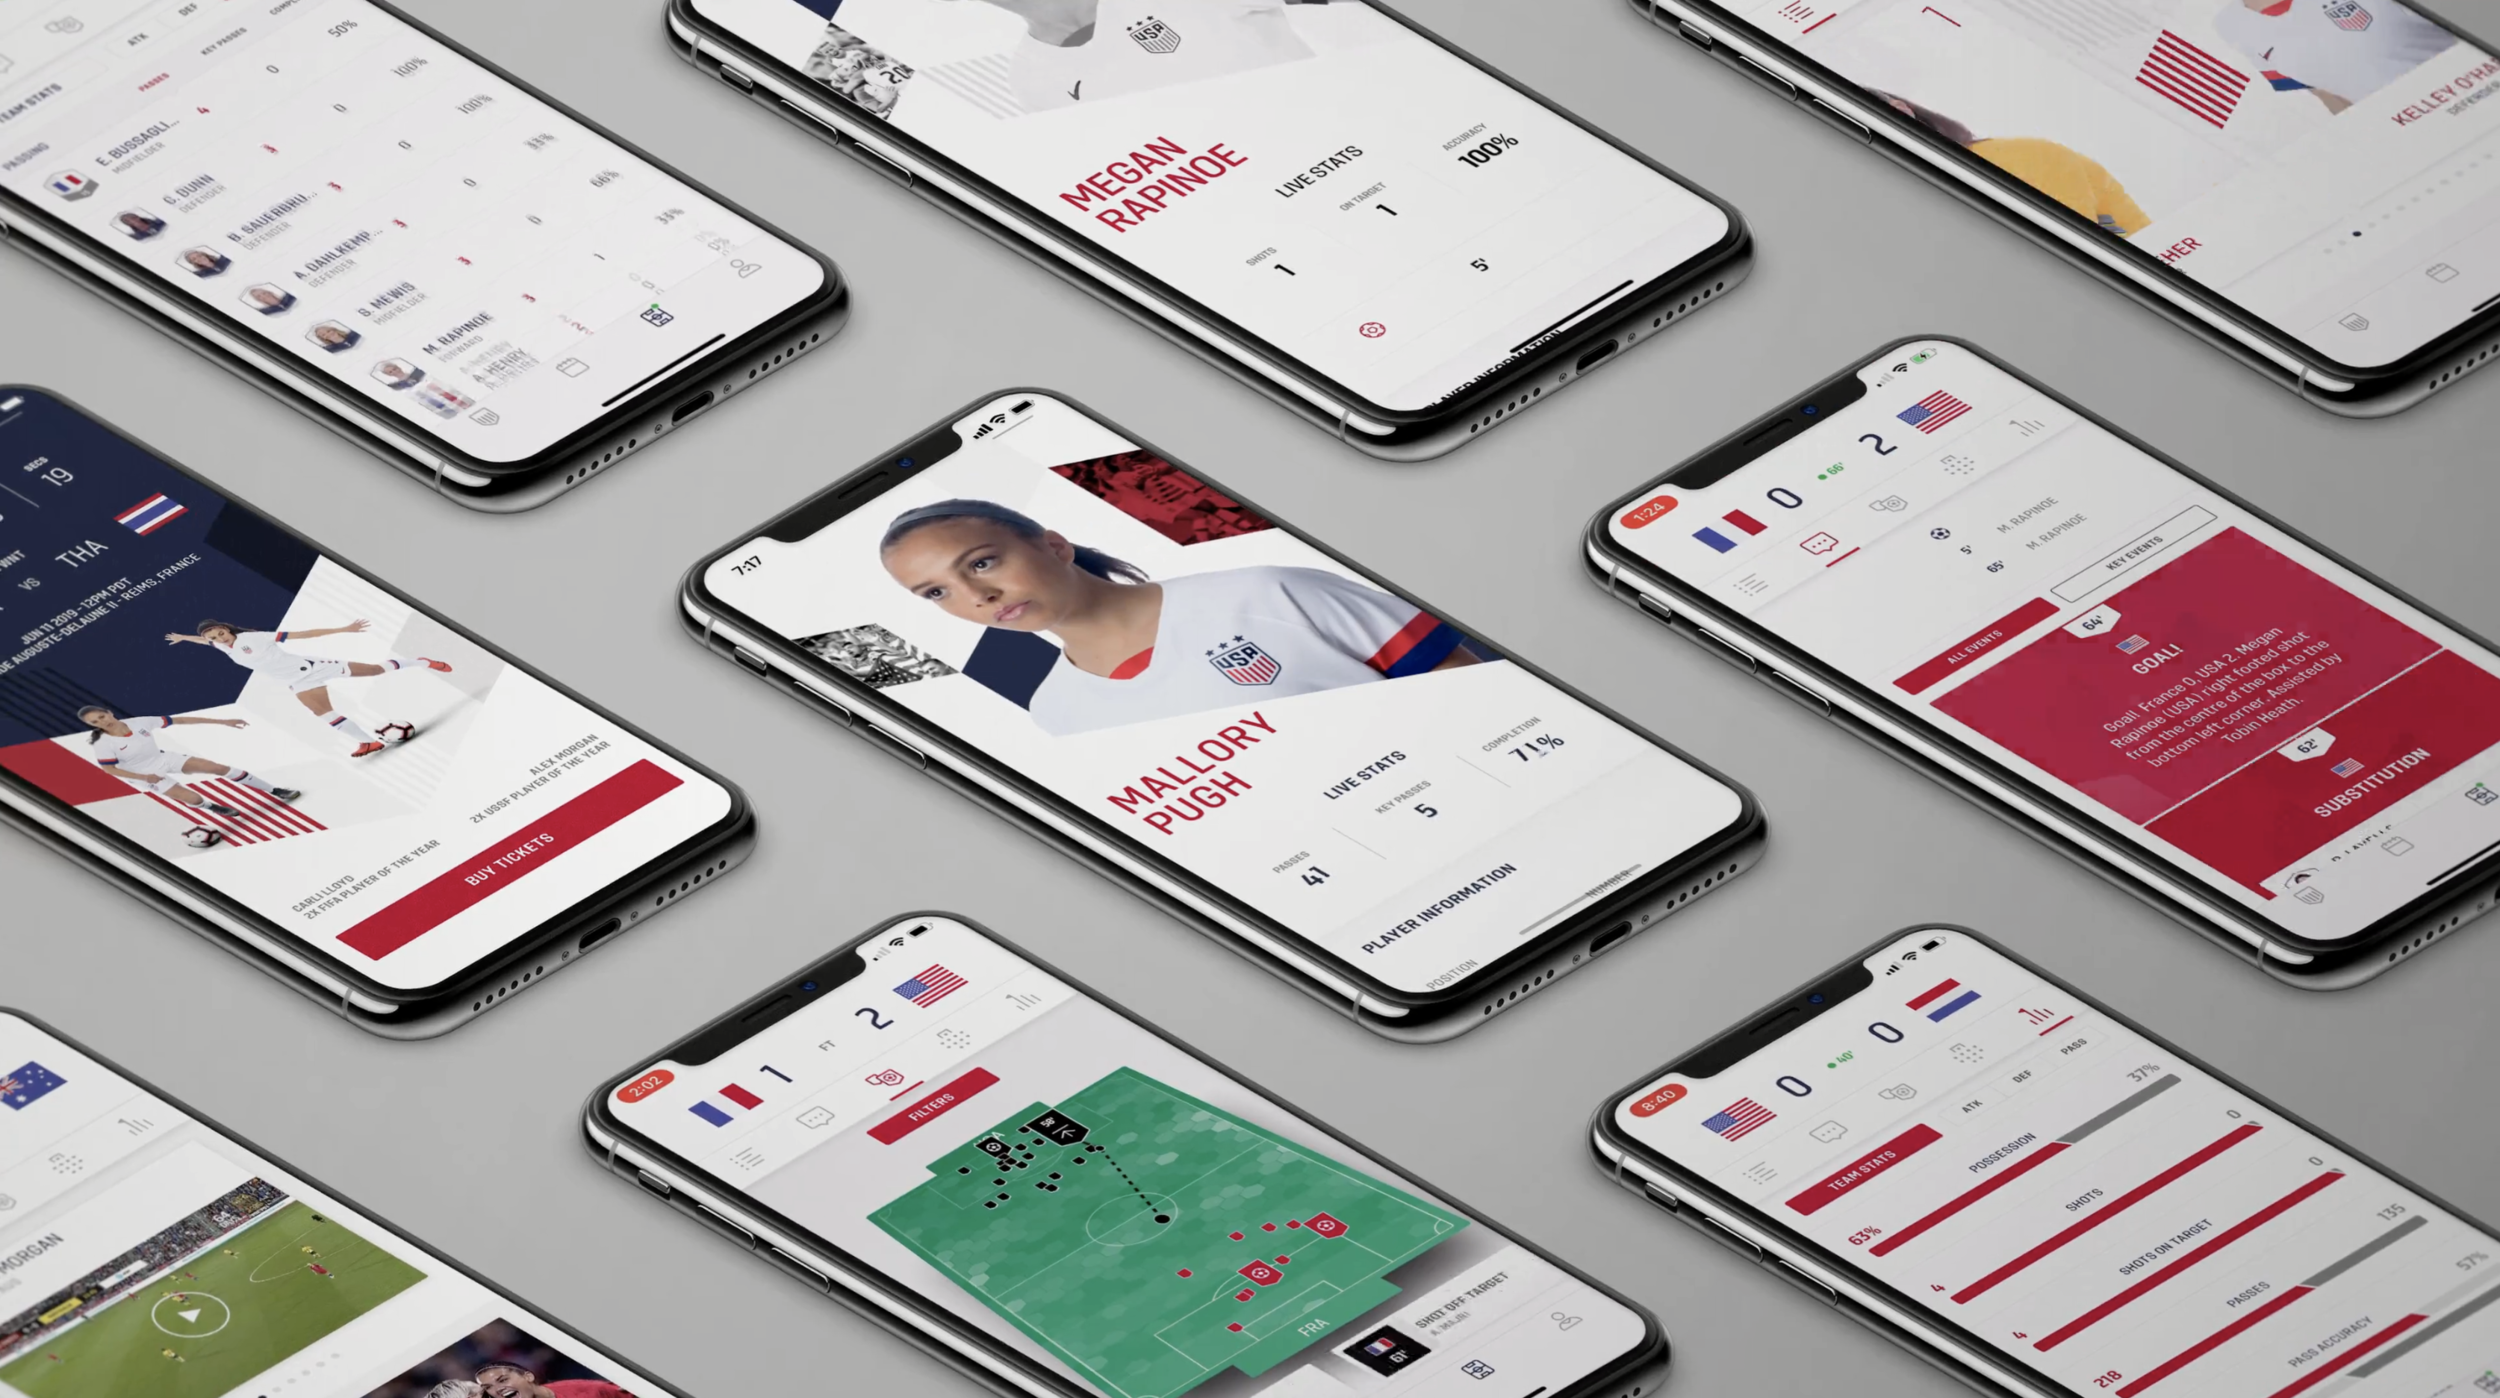 app screens for real ussf.png